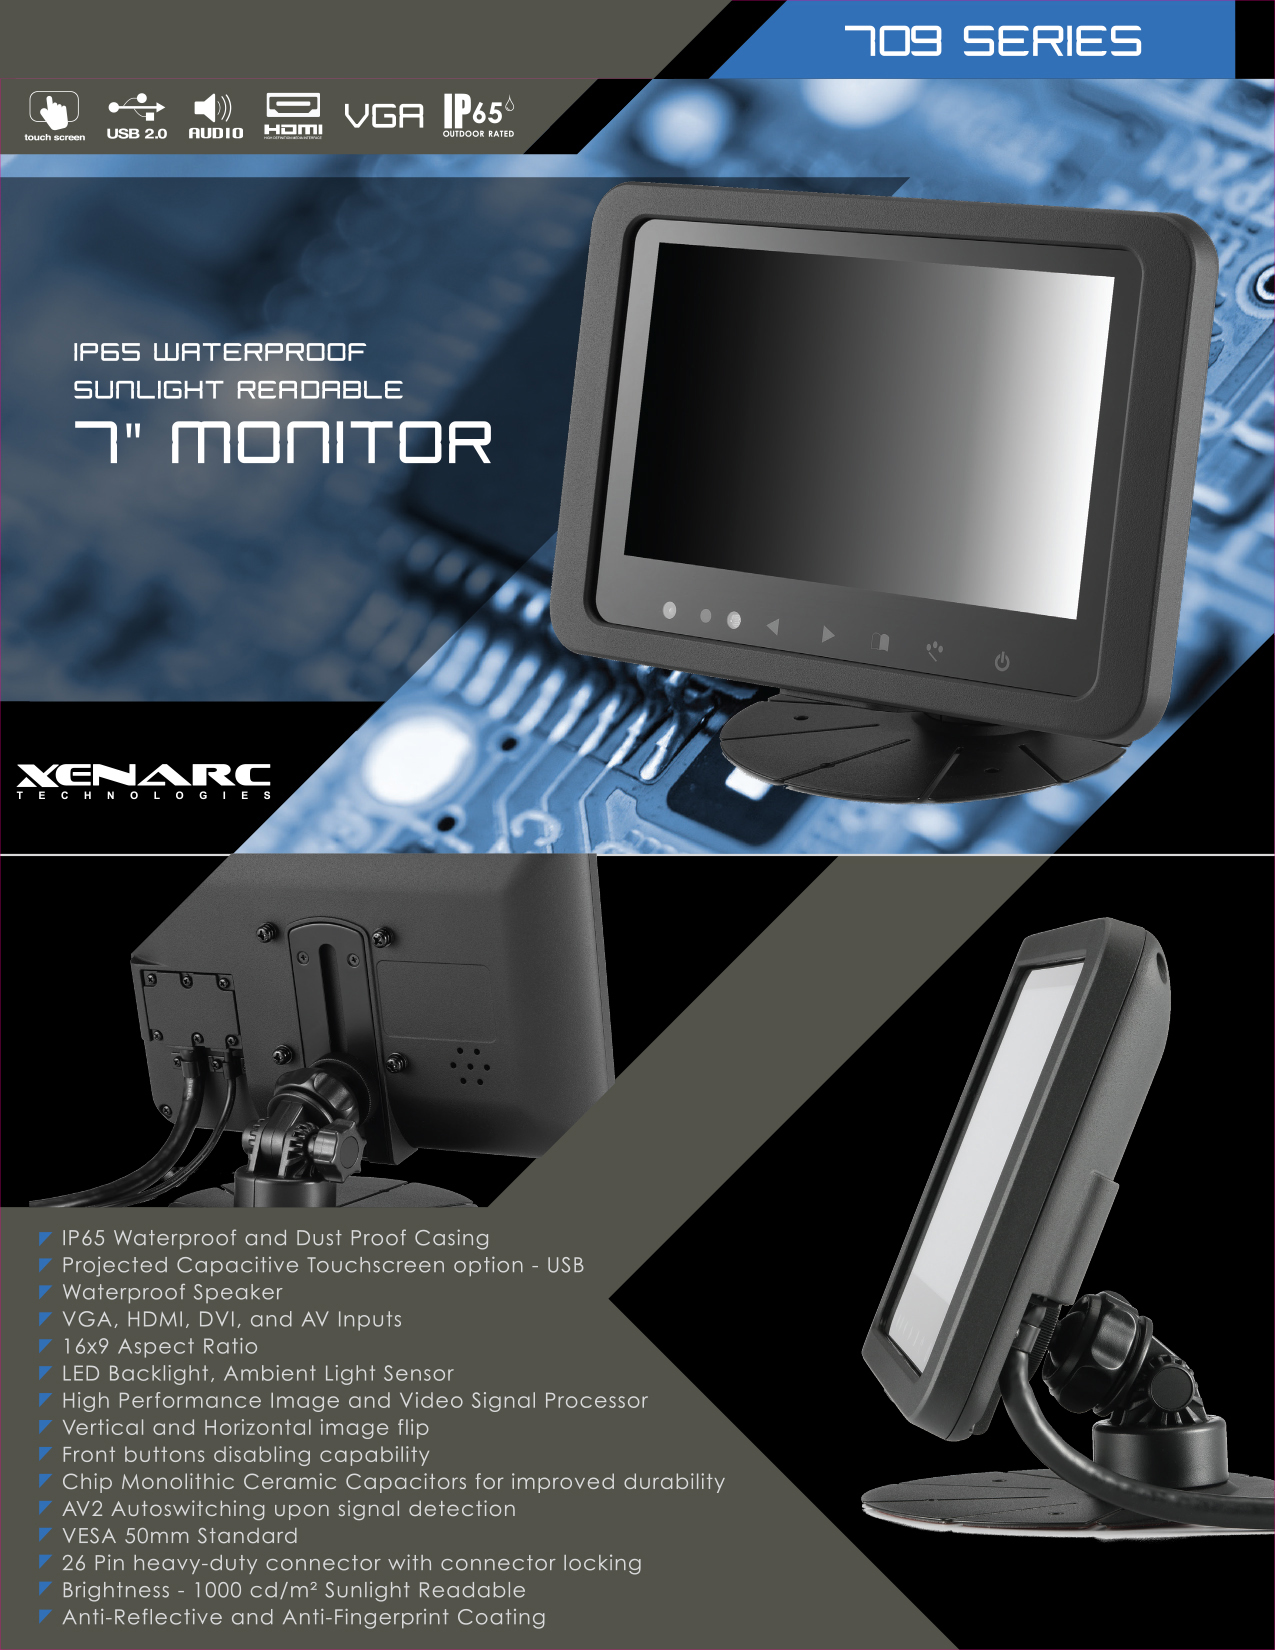 "The Best Small Monitor and Small Touchscreen Solutions For Small Projects And Small Spaces Rugged Small LCD Touchscreen Monitor Solutions for All Industries - 7"", 8"", 9"", 10"",12"",15"",18"" https://www.xenarc.com  Xenarc Technologies manufactures the best 7"",8"",9"",10"",12"",15"",18"",24"" Touchscreen Solutions for all industries and are tested and certified according to our customers requirements and according to their industry specifications.  Xenarc's are built to work anywhere and build to last. MTBF(Mean Time Between Failures) of a Xenarc is 55,000 hour of continuous operation or 6.2 years.    touchscreen, touchscreen monitor, small touchscreen, small monitor, 10"" touchscreen, 7"" touchscreen,10"" monitor, 7"" monitor, LCD Monitor, touch screen, touch screen monitor, touchscreen manufacturer, monitor manufacturer, touchscreen solutions manufacurer https://www.xenarc.com"